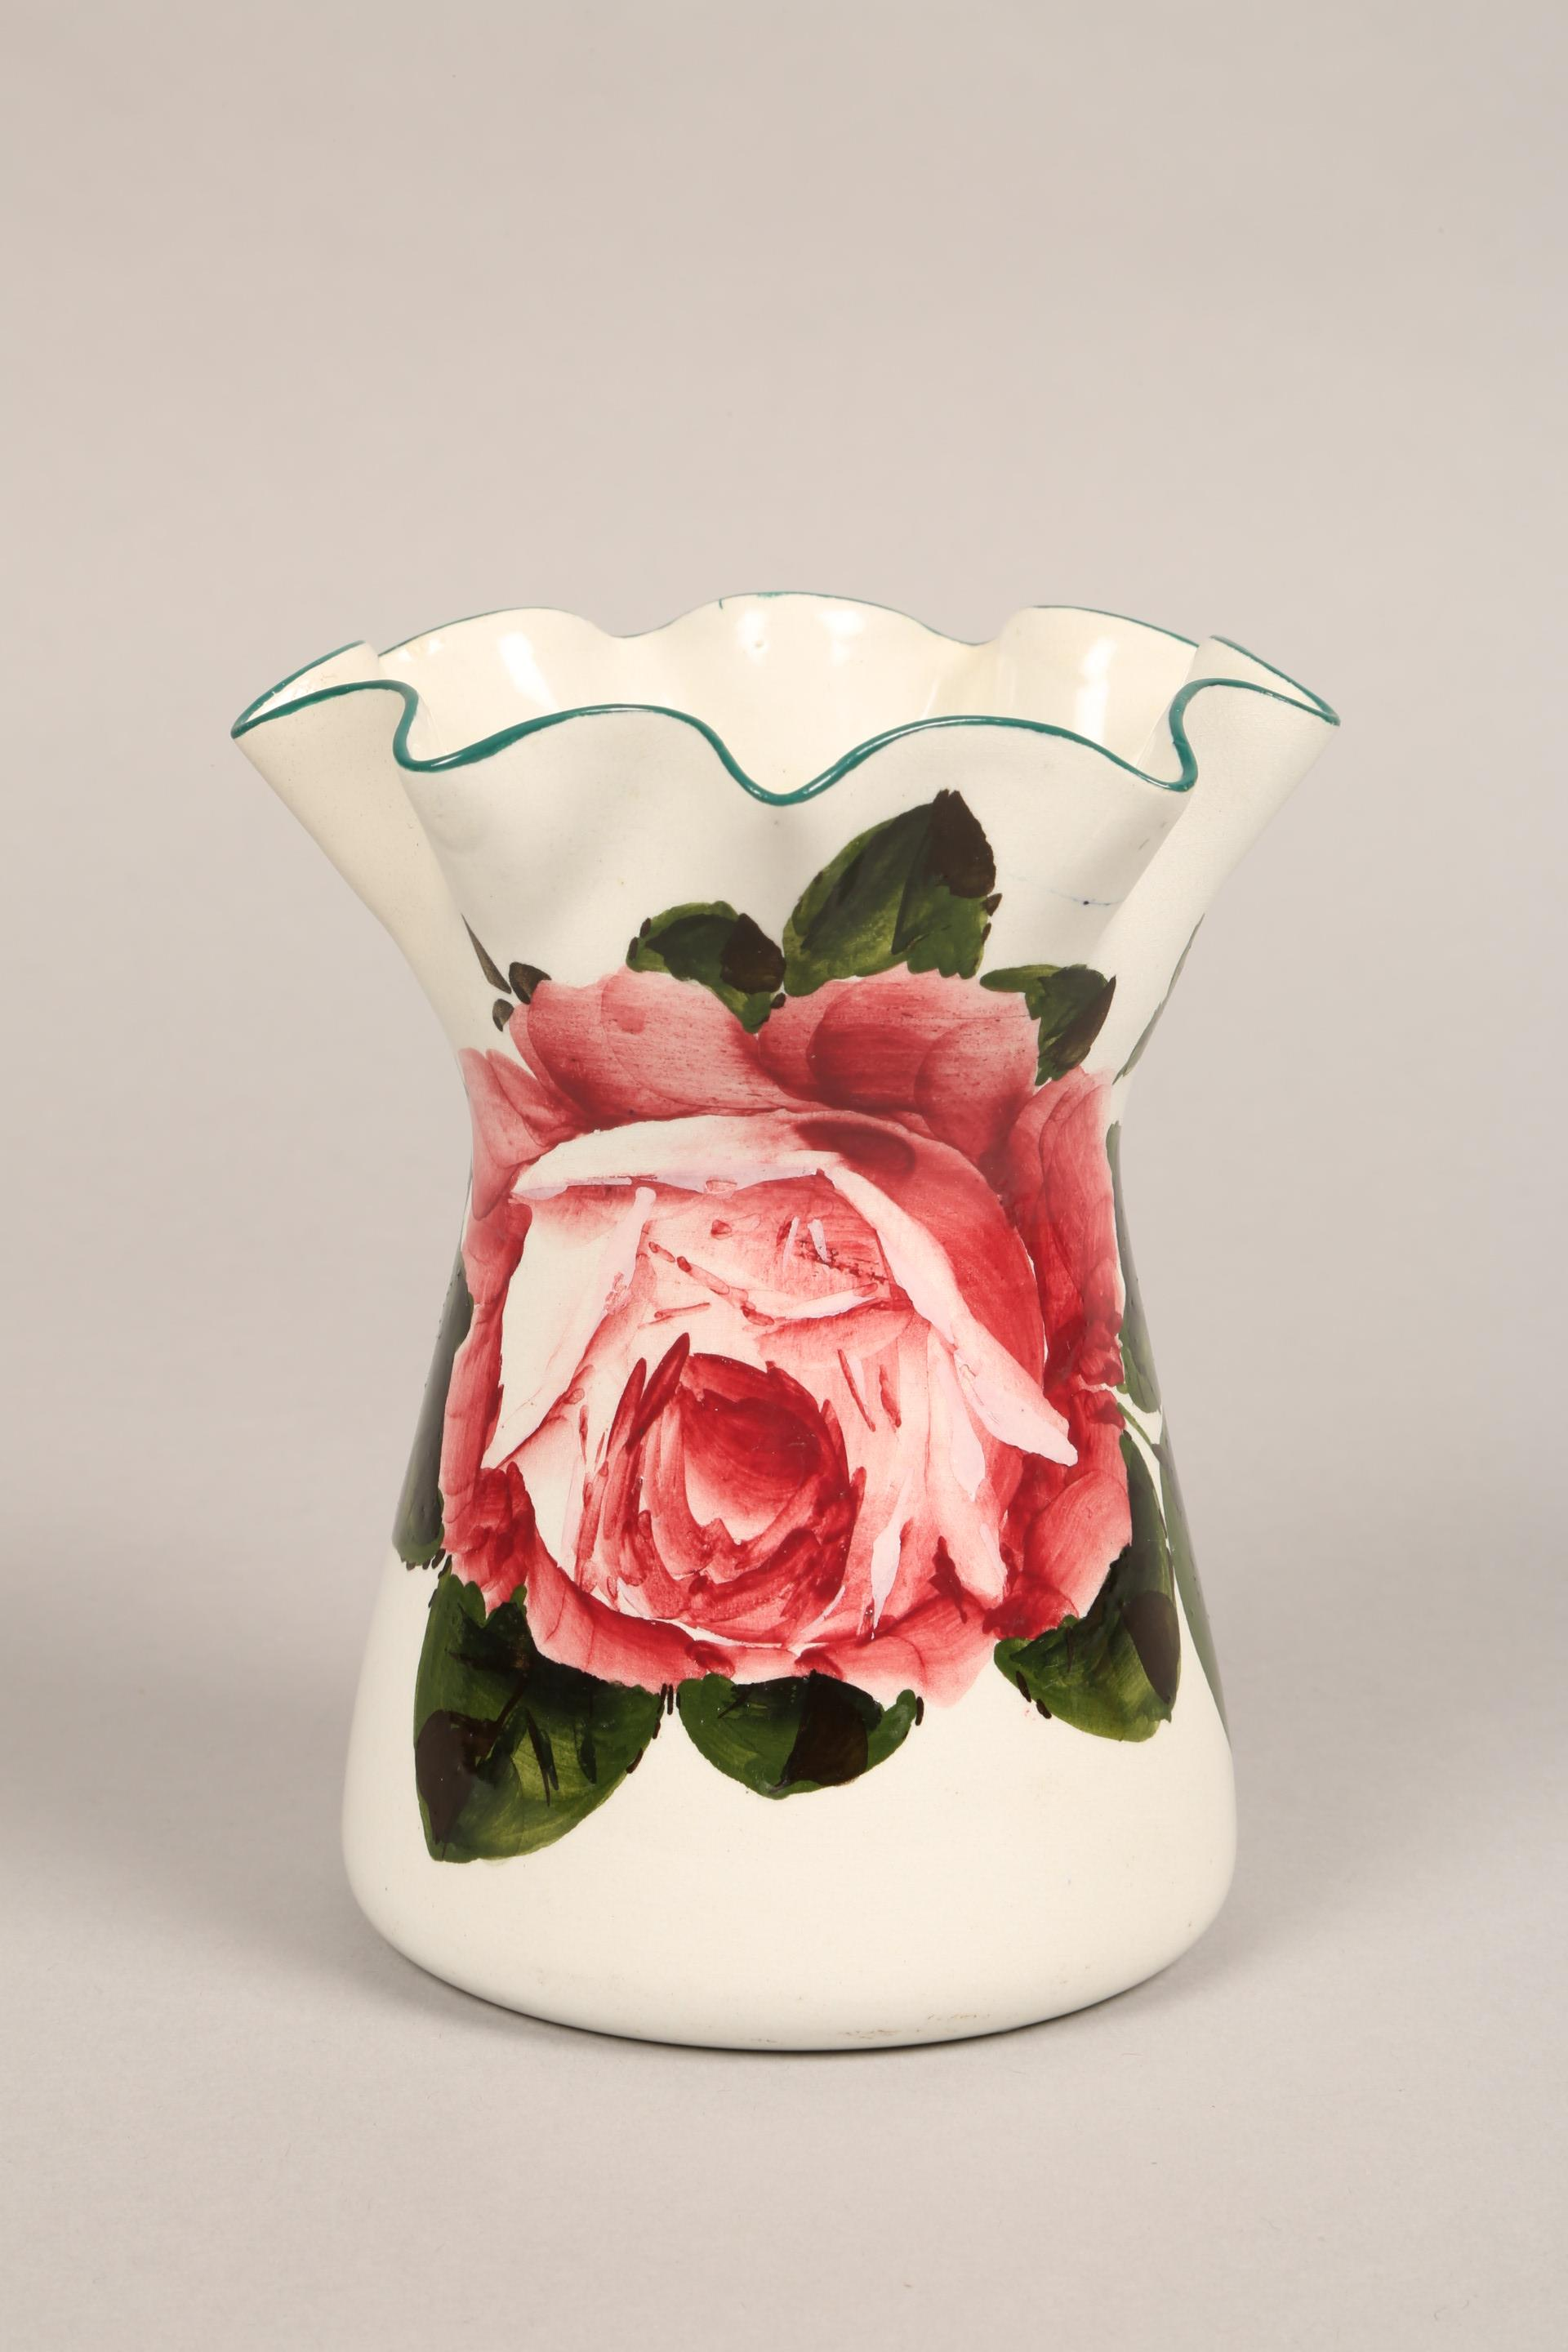 Wemyss pottery vase, lobed rim, hand painted with cabbage roses, incised Wemyss and retailers - Image 5 of 10